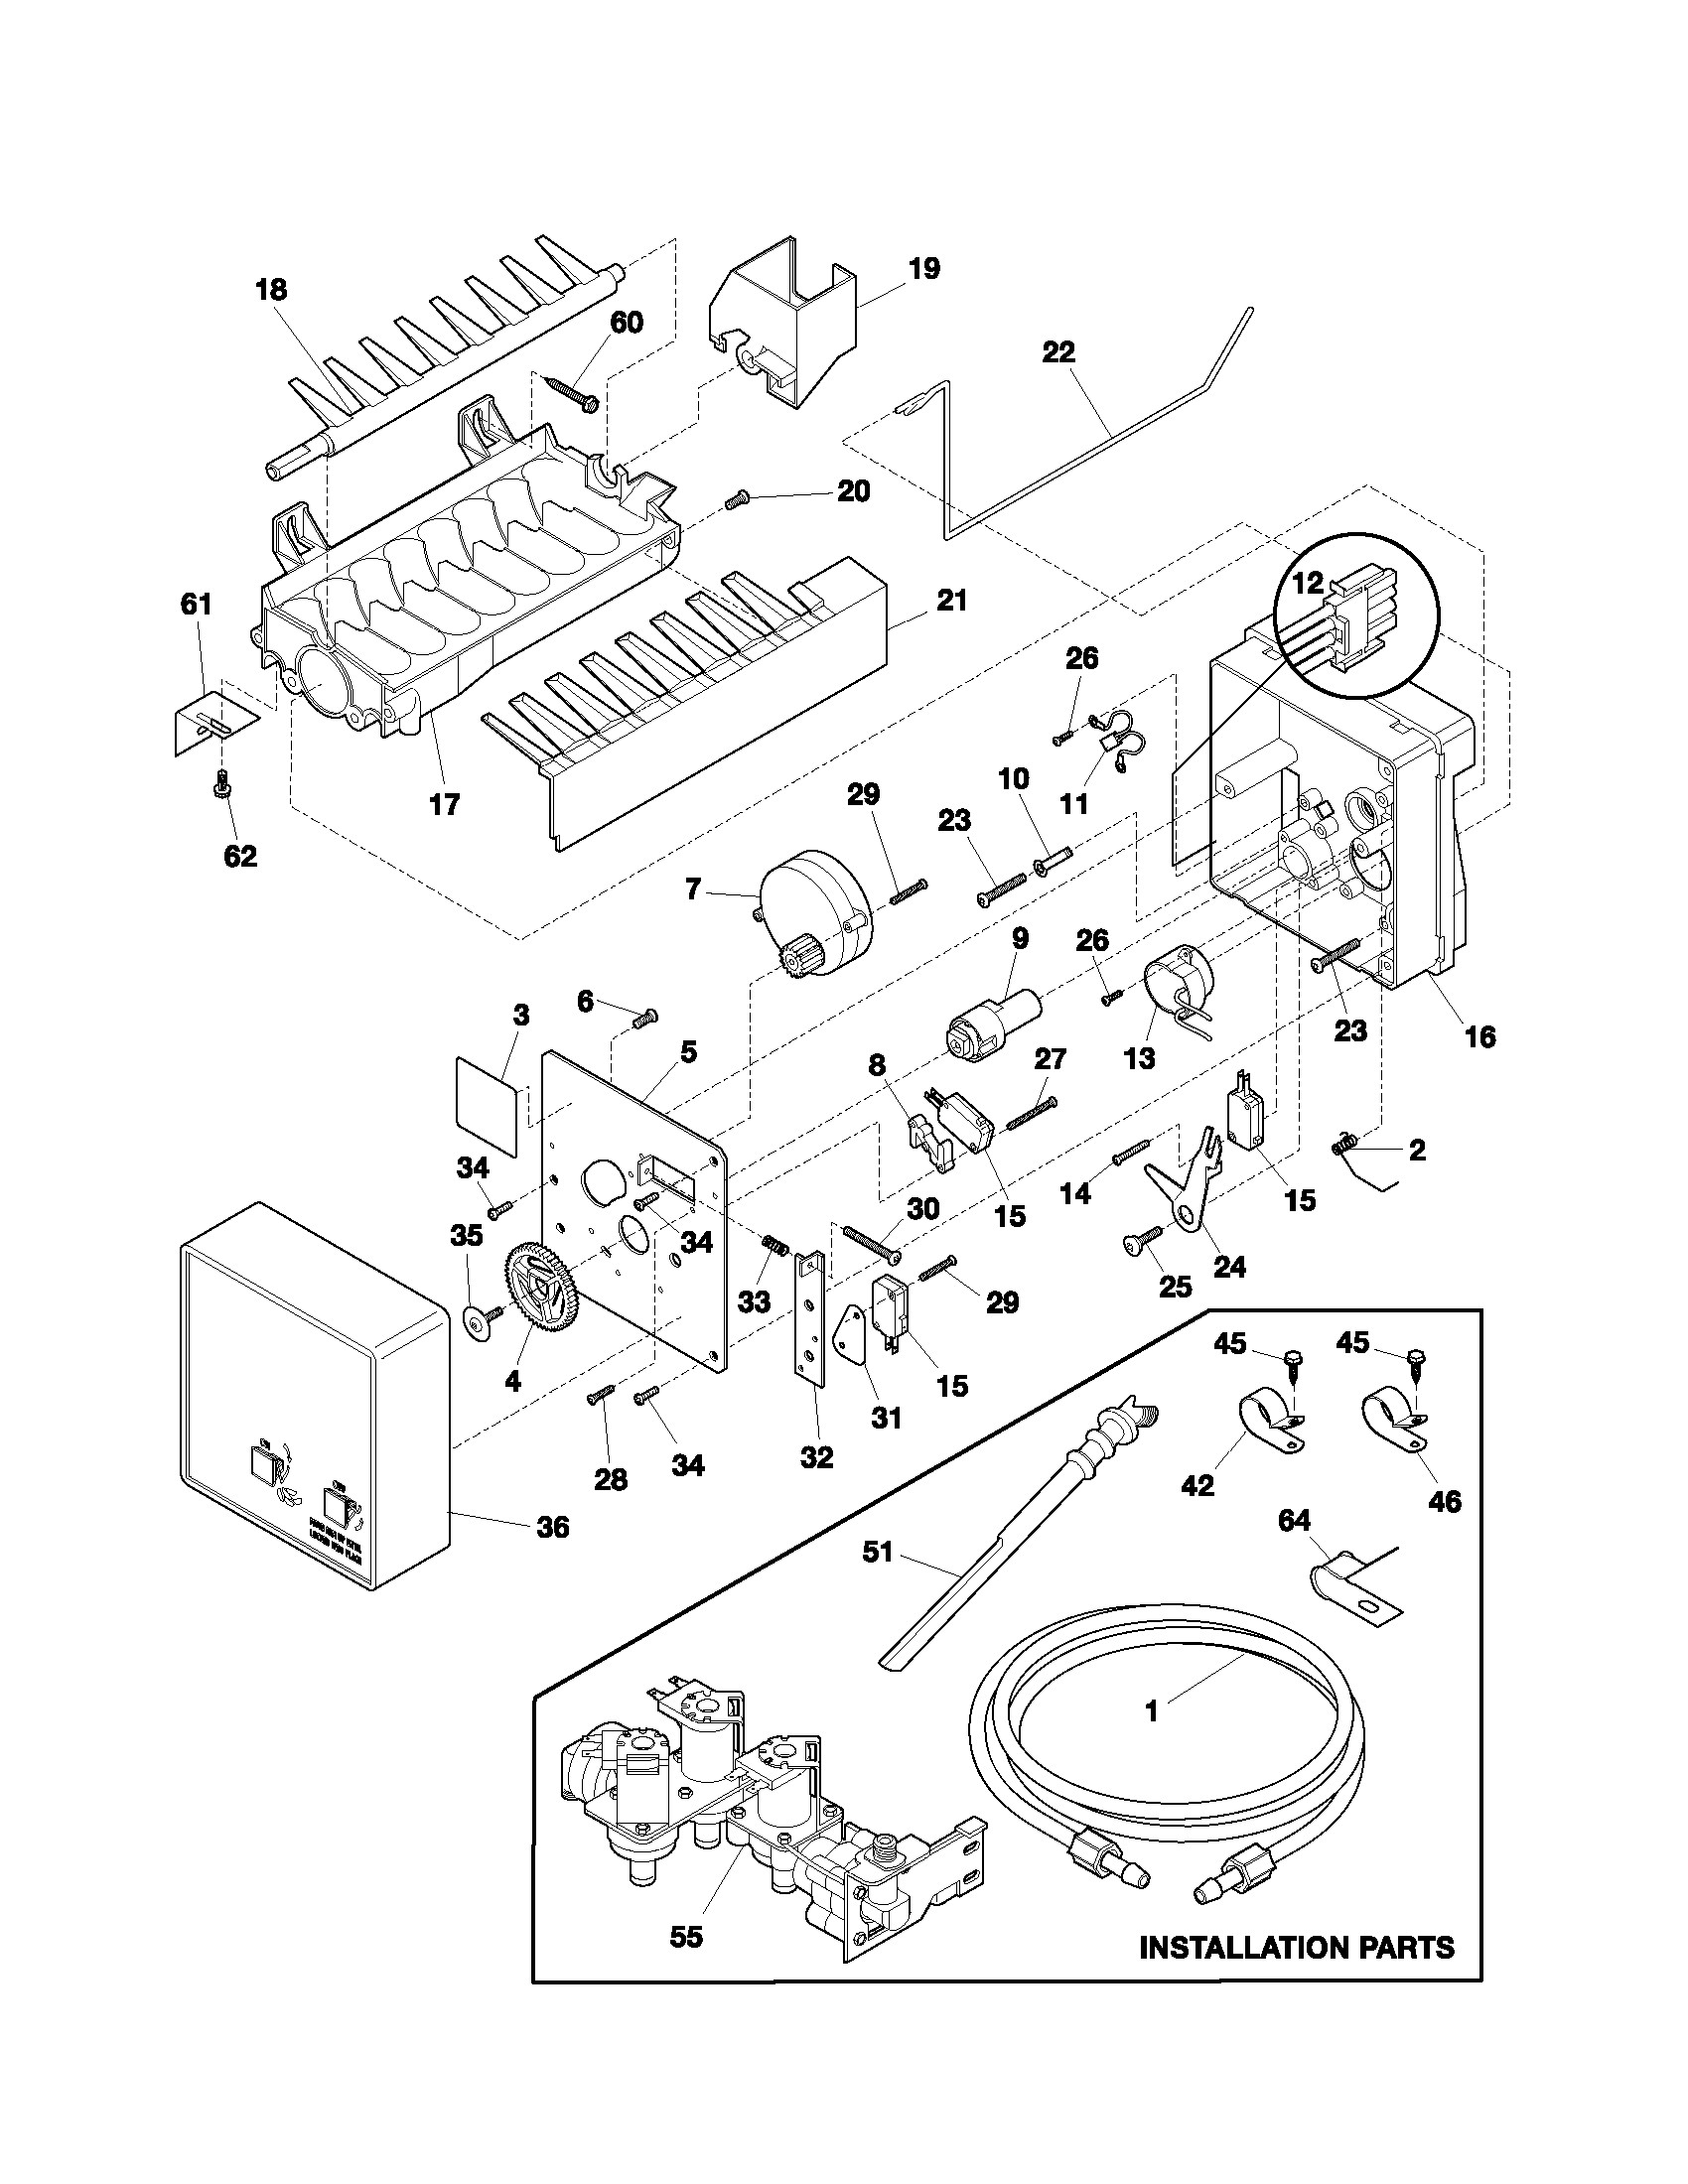 Frigidaire Ice Maker Parts Diagram Frigidaire Model Frs26rlecs0 Side by Side Refrigerator Genuine Parts Of Frigidaire Ice Maker Parts Diagram